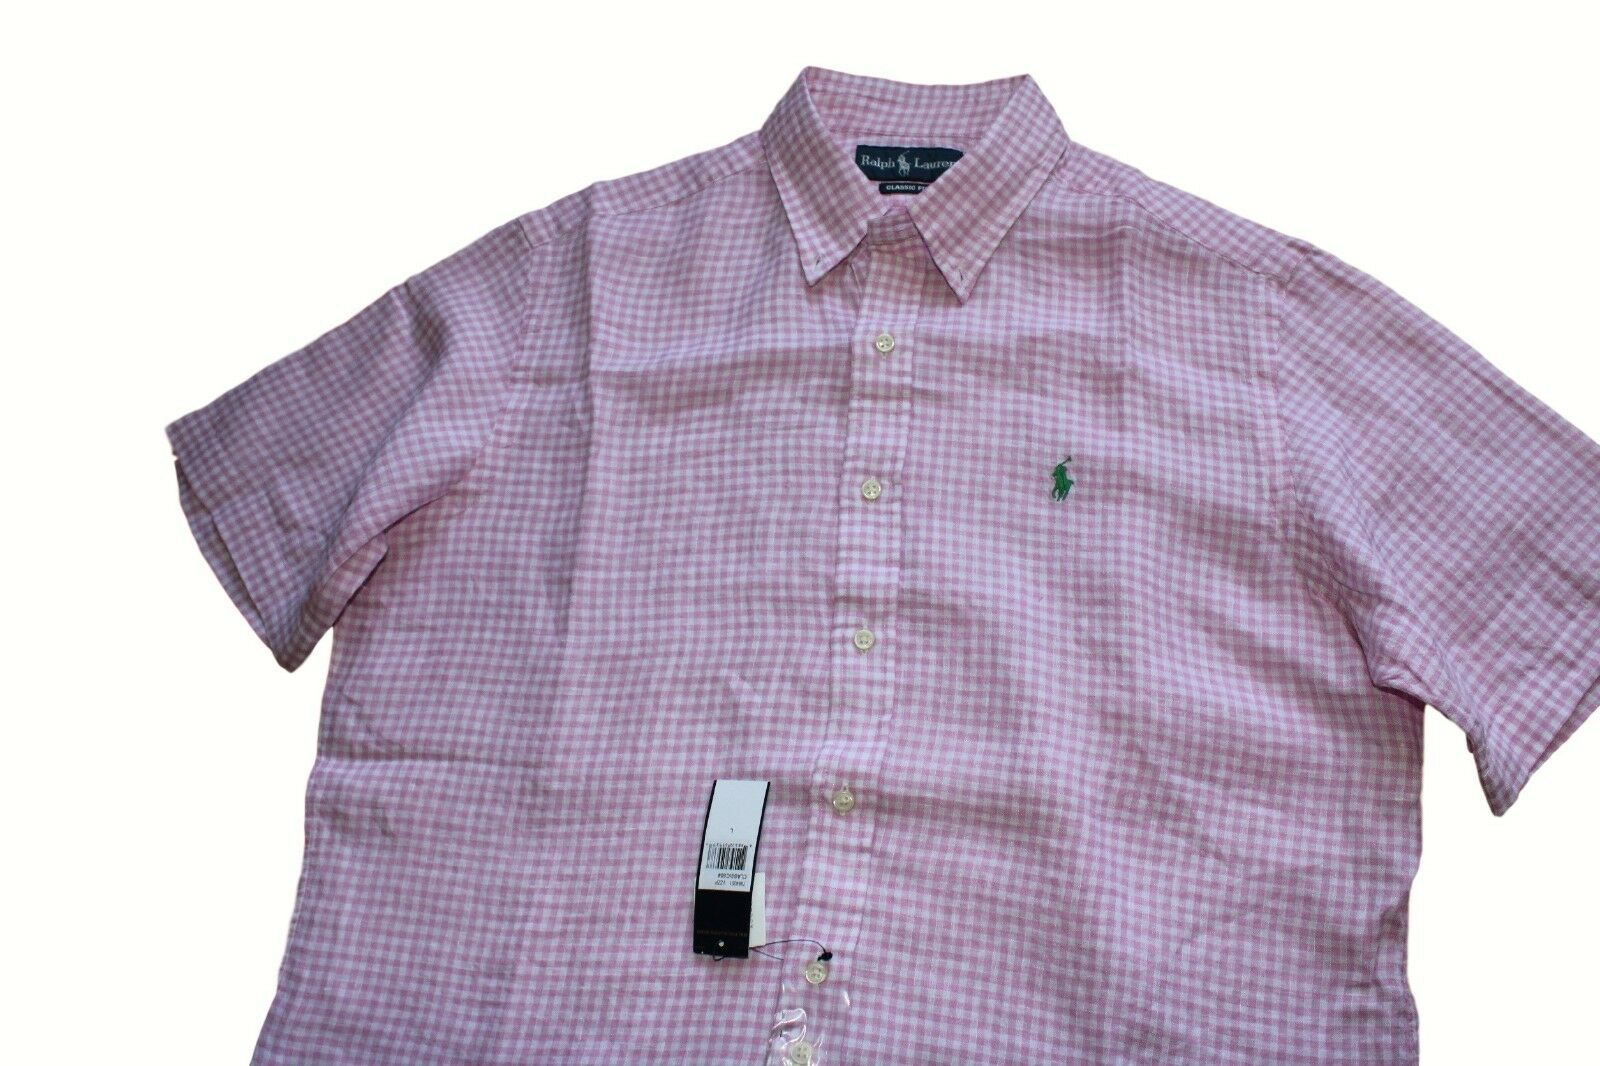 Polo Ralph Lauren Classic Fit Short Sleeve Linen Sport Shirt in Size Large